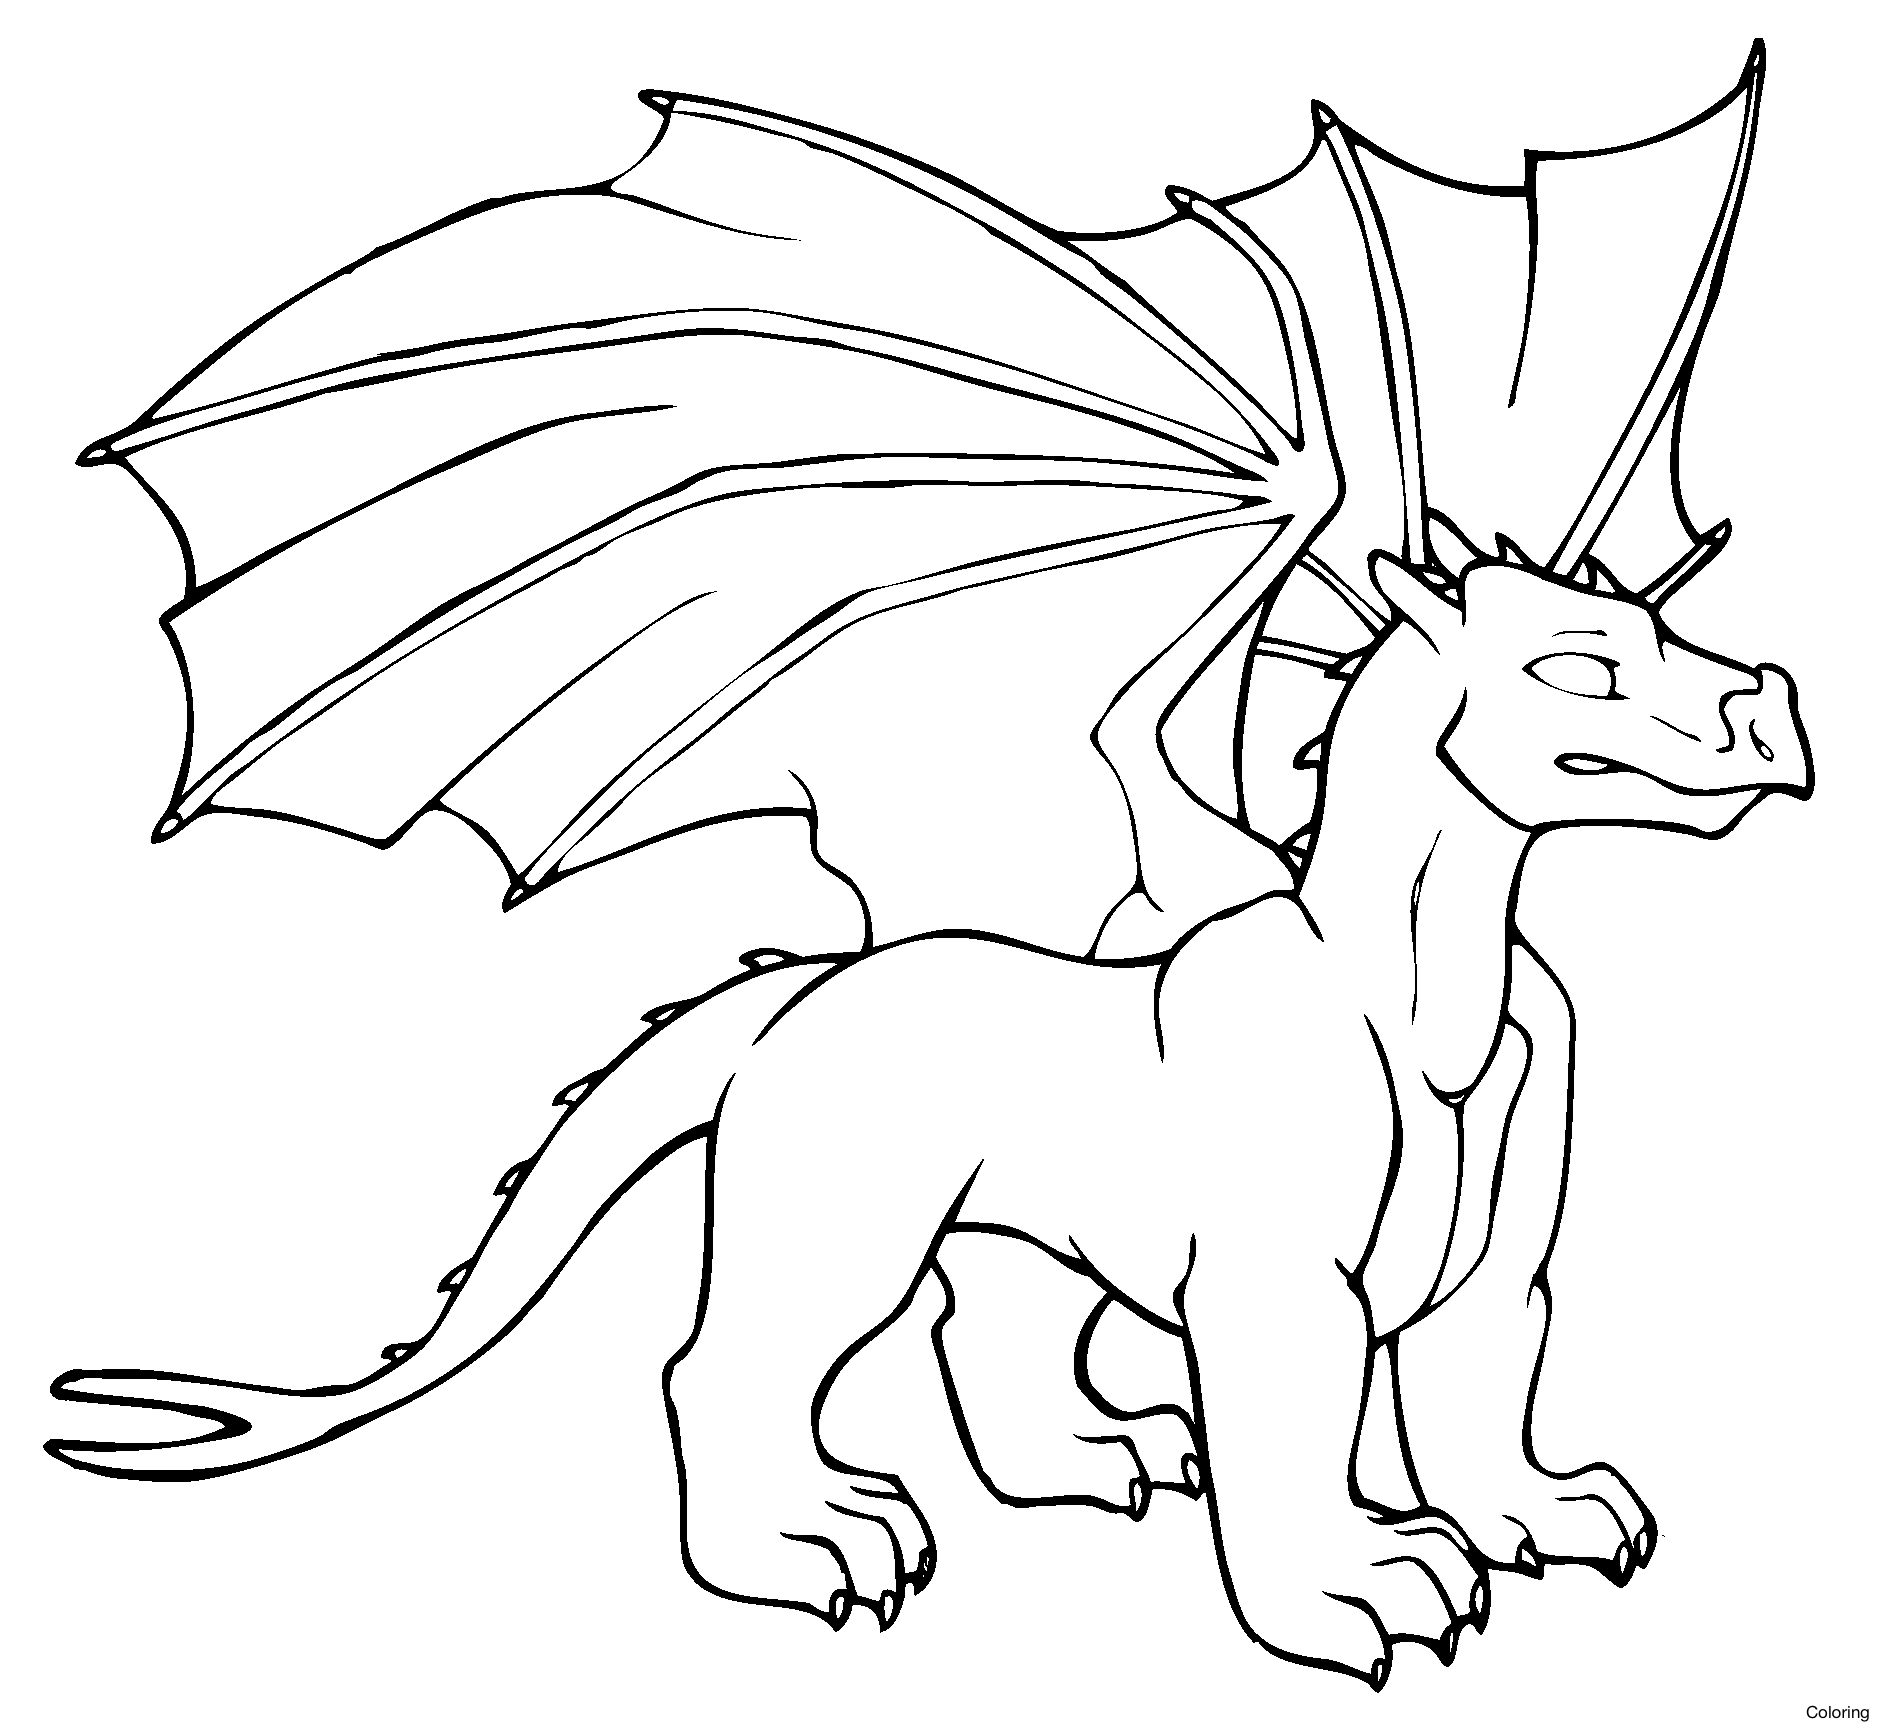 1880x1728 Dragon Coloring Pages Adults Stunning For Book 24f Ball Games Diaiz